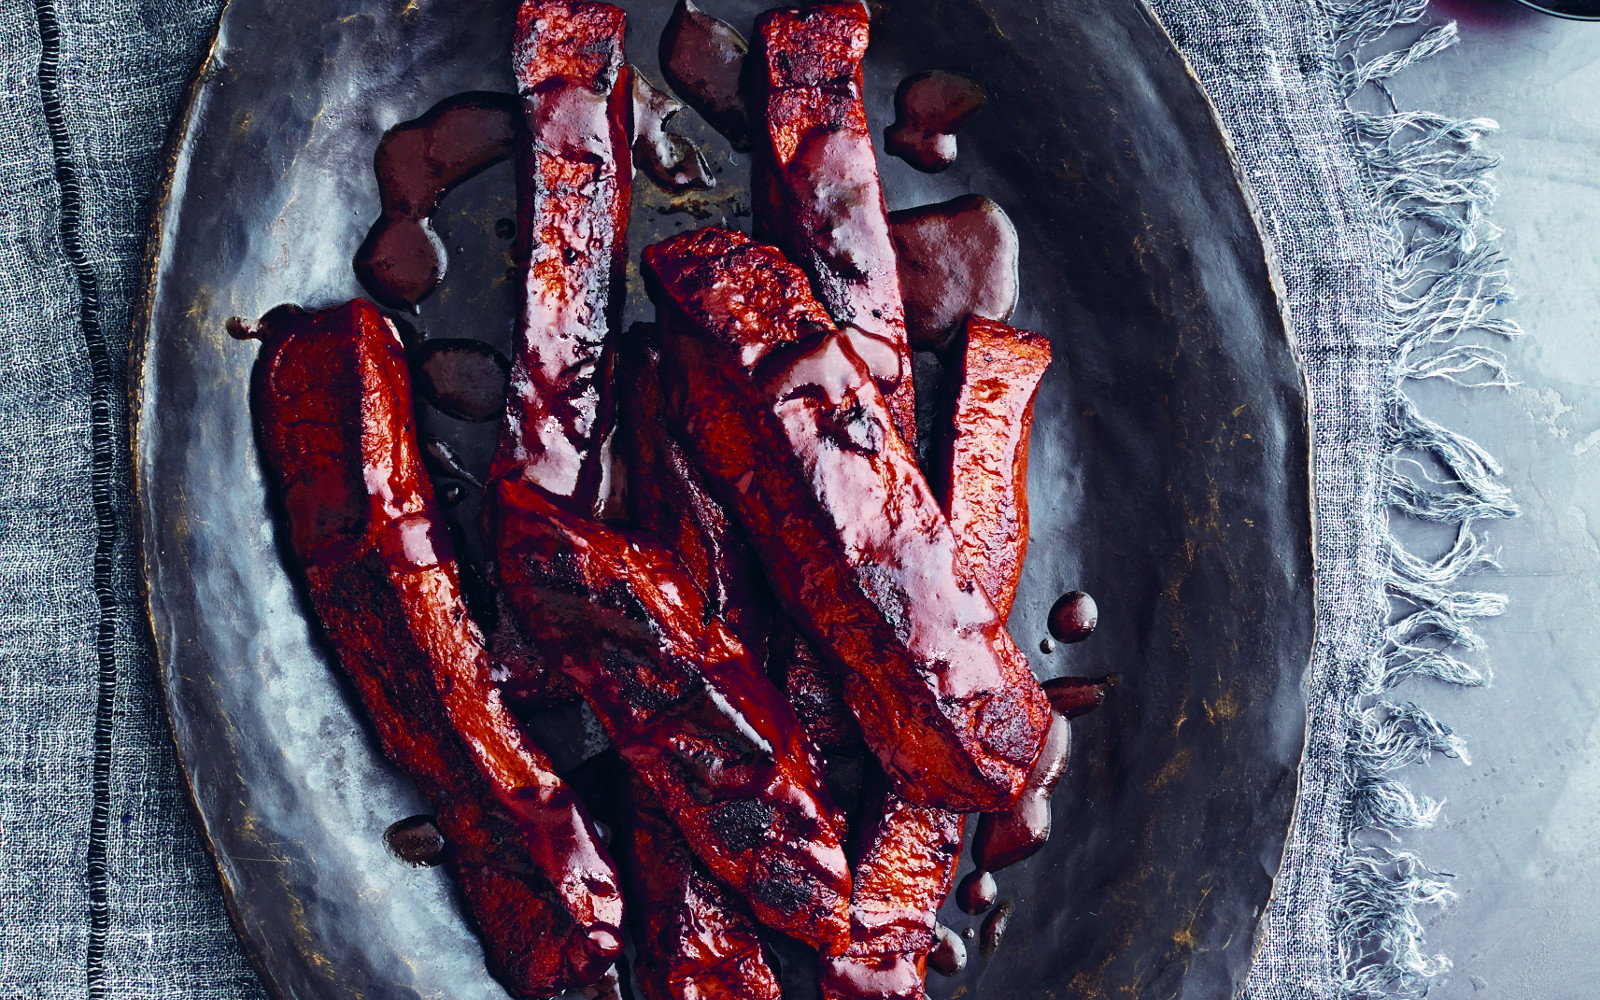 BBQ Satan's ribs with homemade barbecue sauce